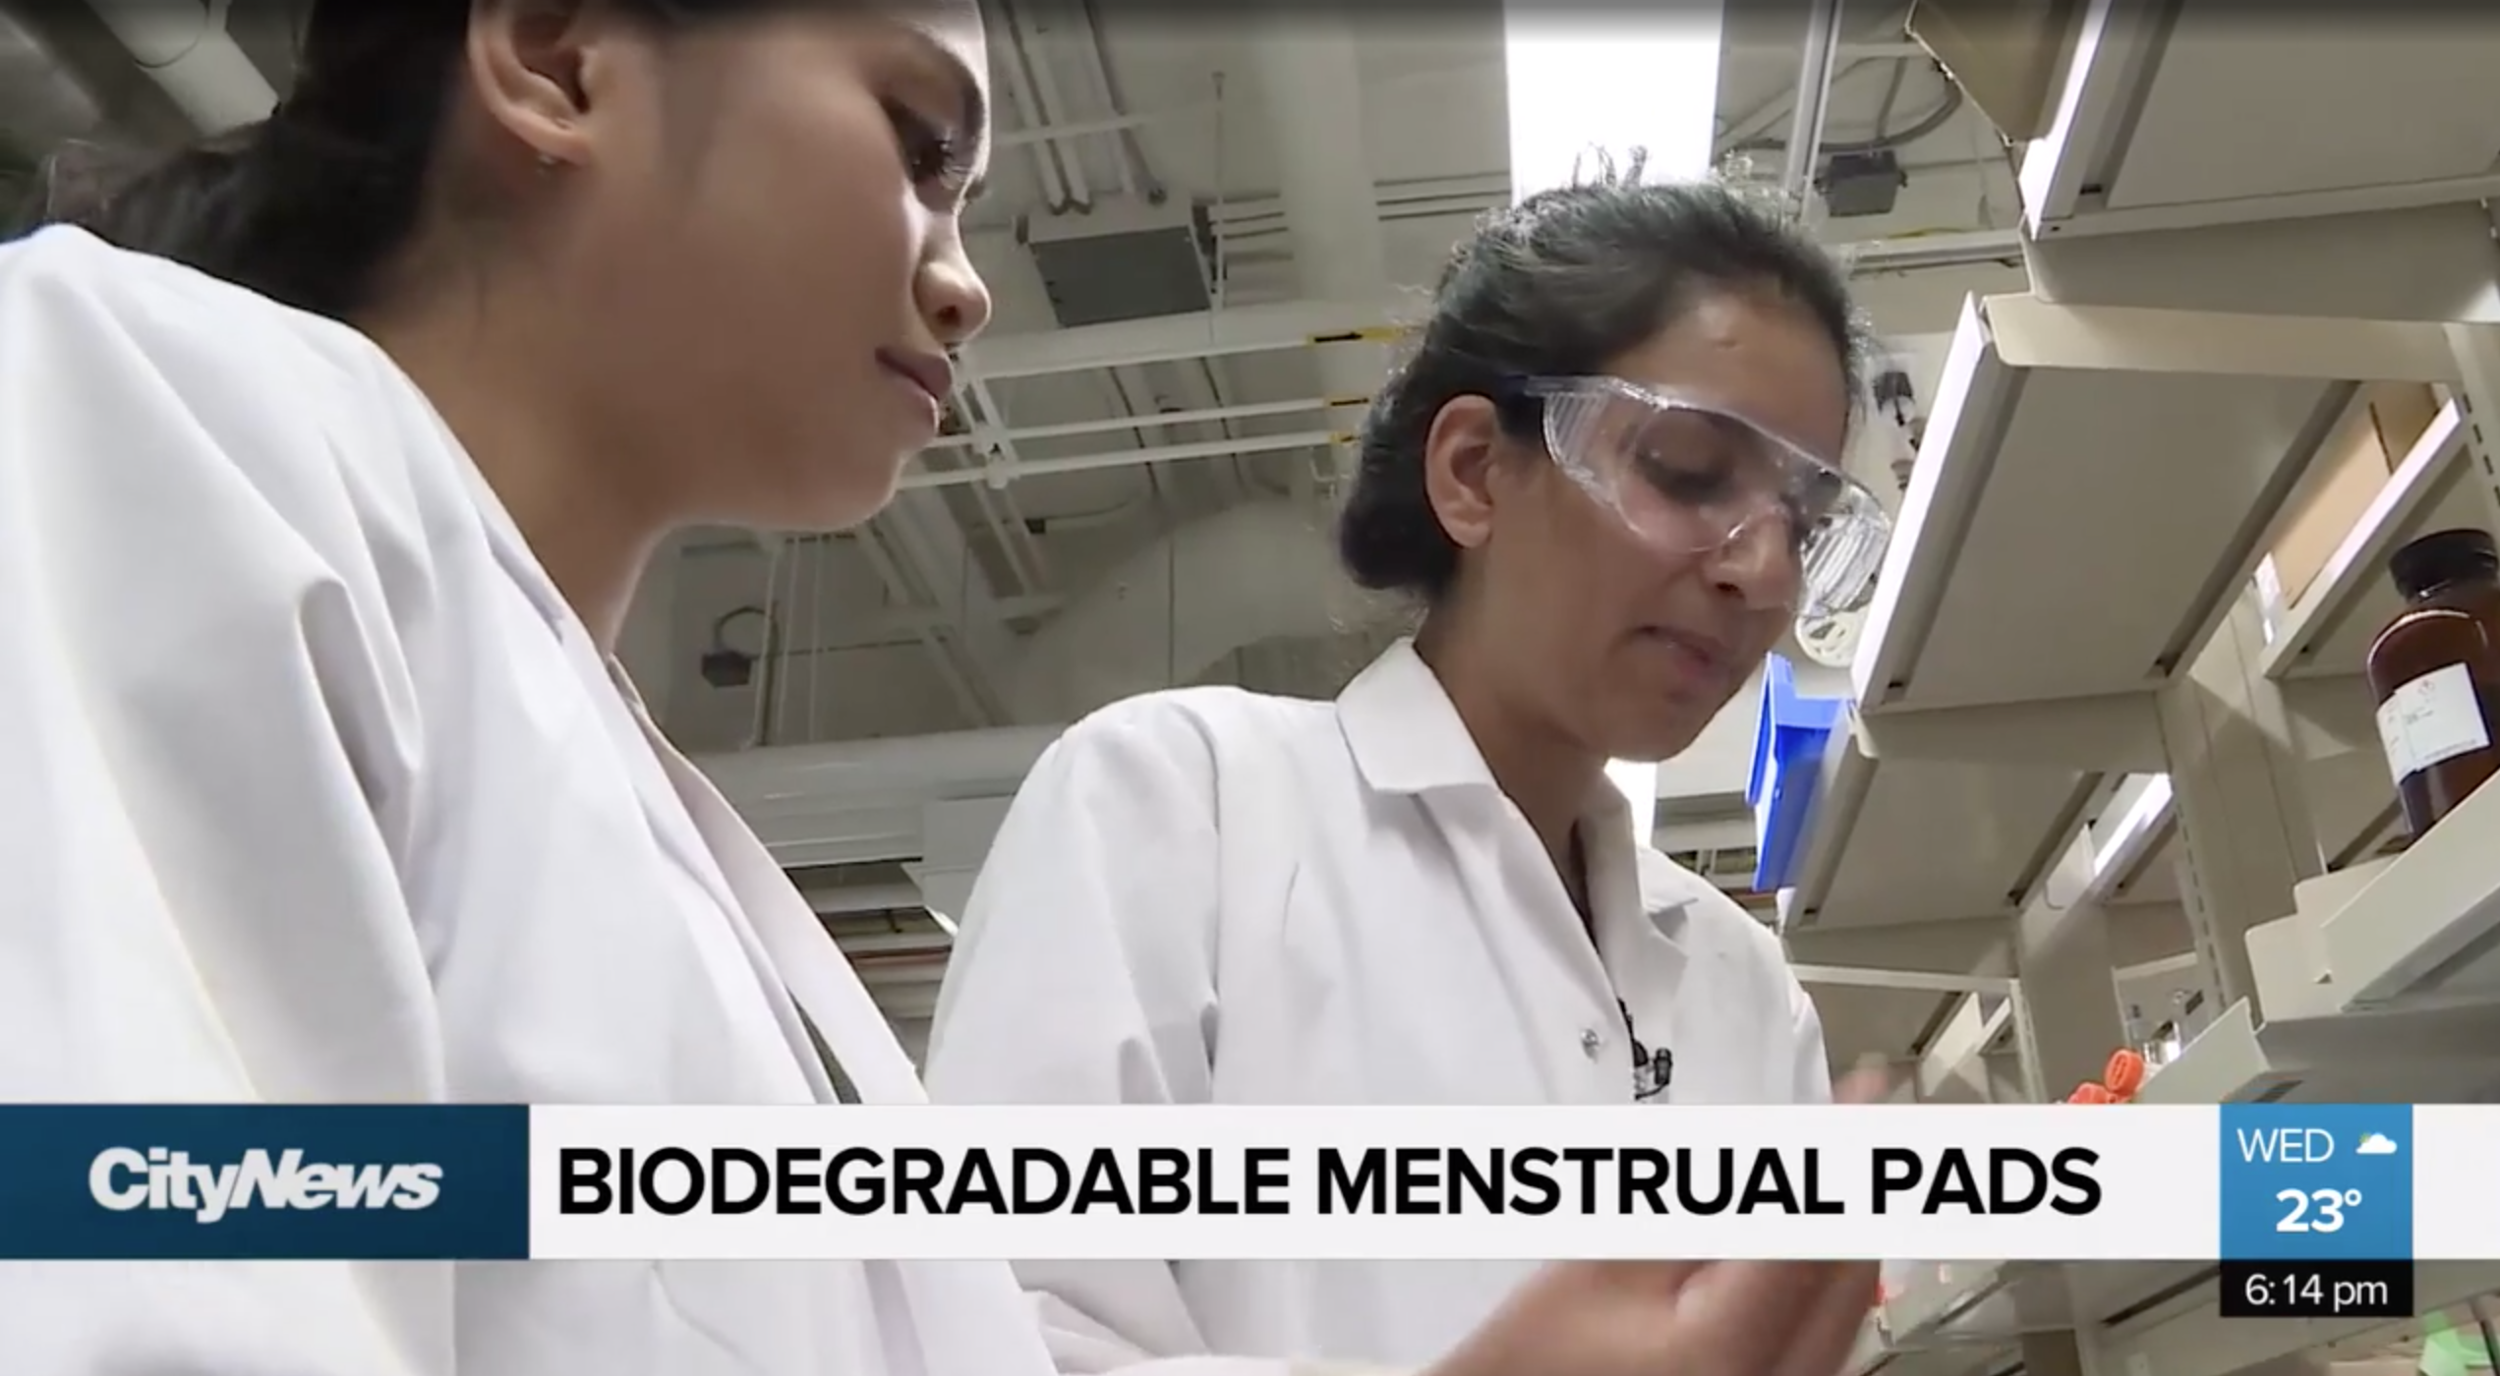 CityNews:  Are biodegradable pads the future of menstrual products?